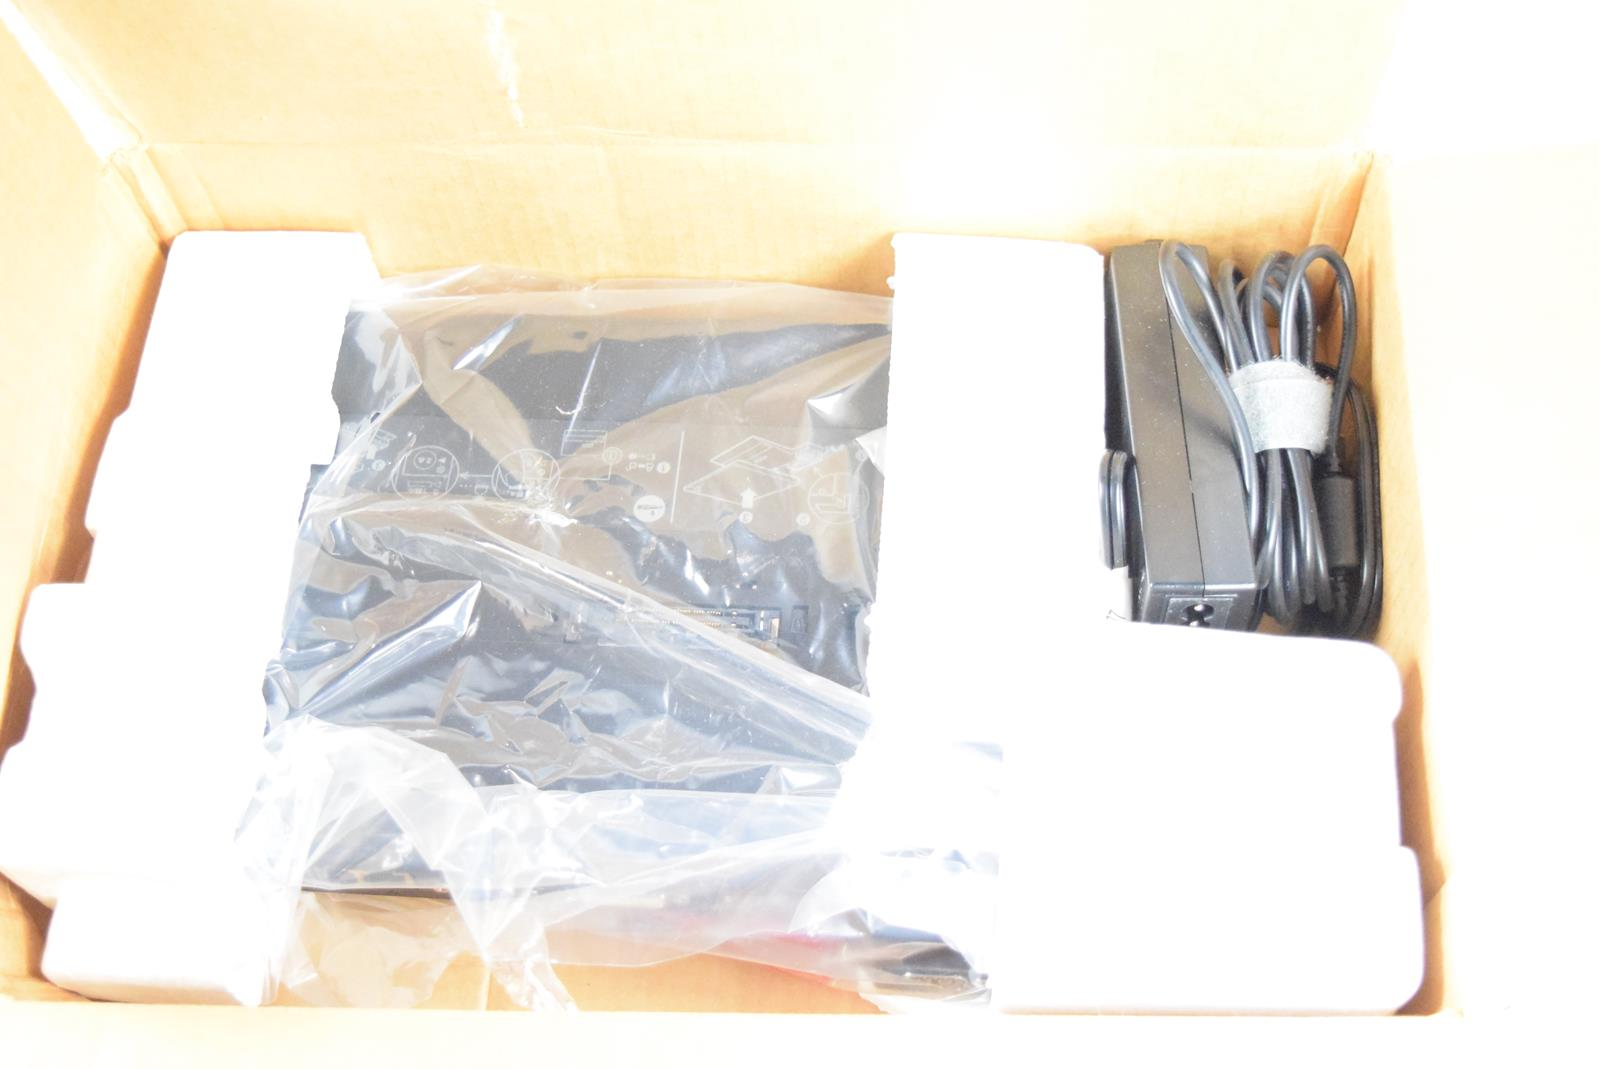 lenovo lot of u docking station  product details